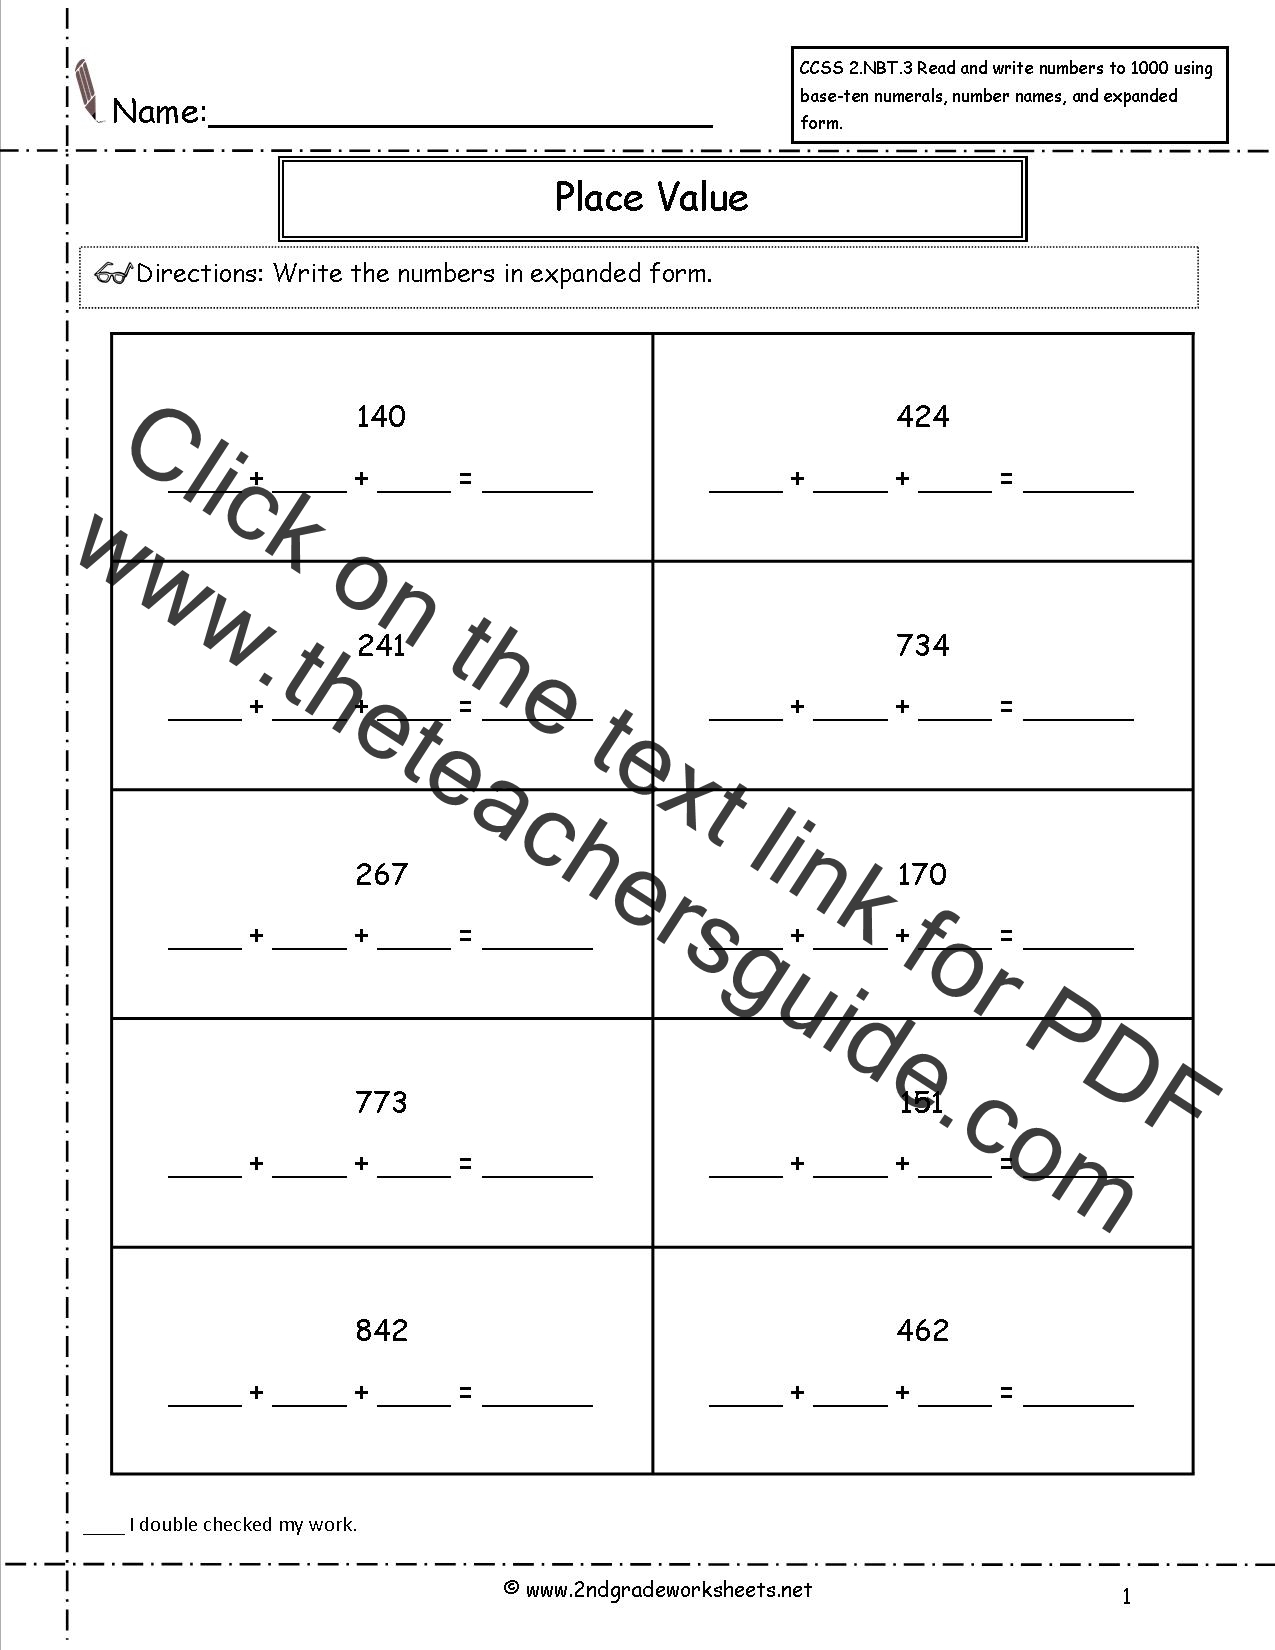 CCSS 2NBT3 Worksheets Place Value WorksheetsRead and Write Numbers – Standard Form Math Worksheets